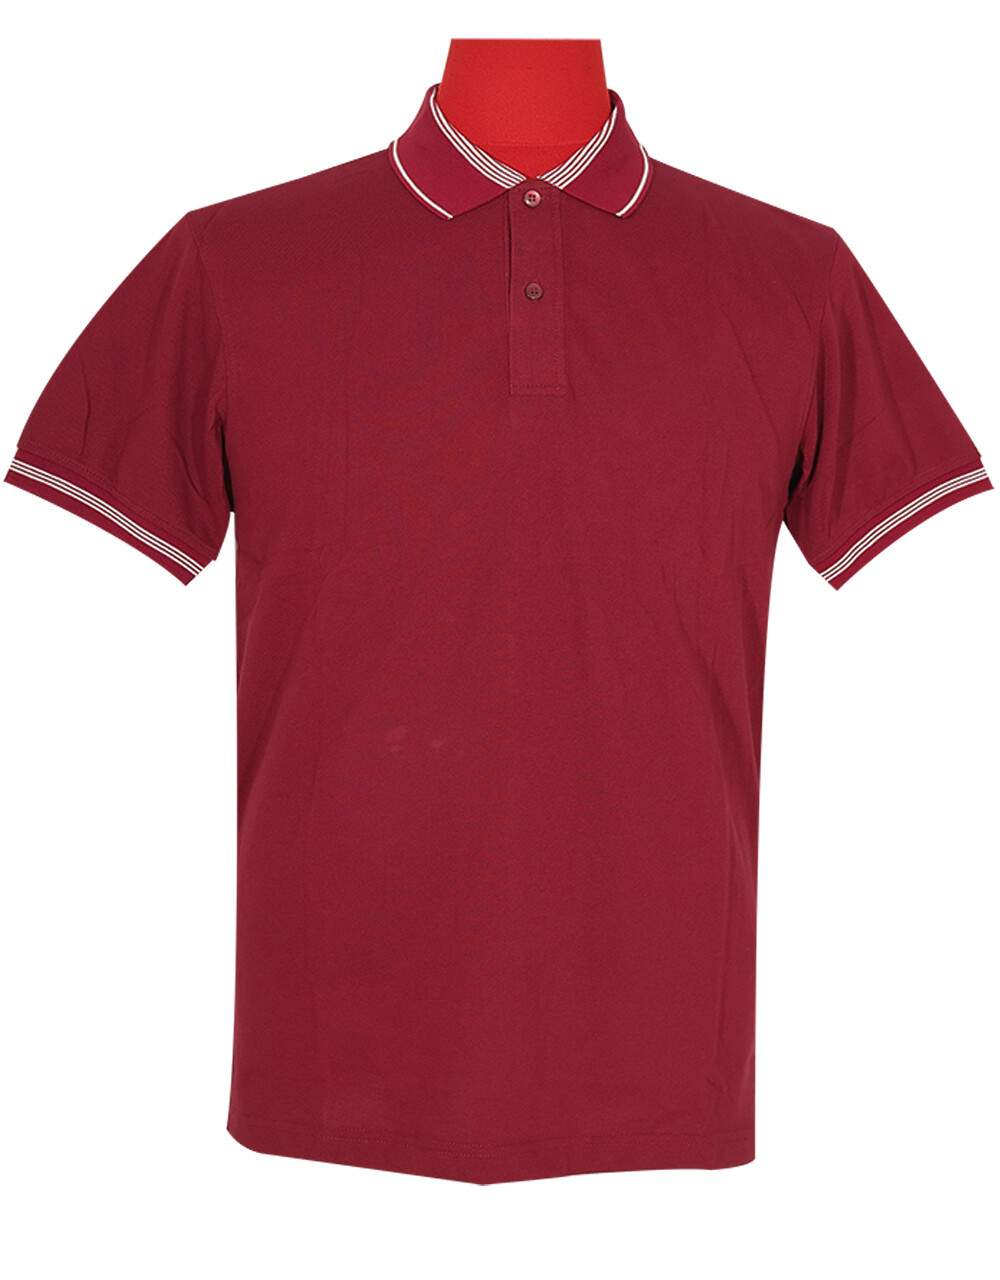 Polo Shirt Fabric Cool Plus Burgundy Color.